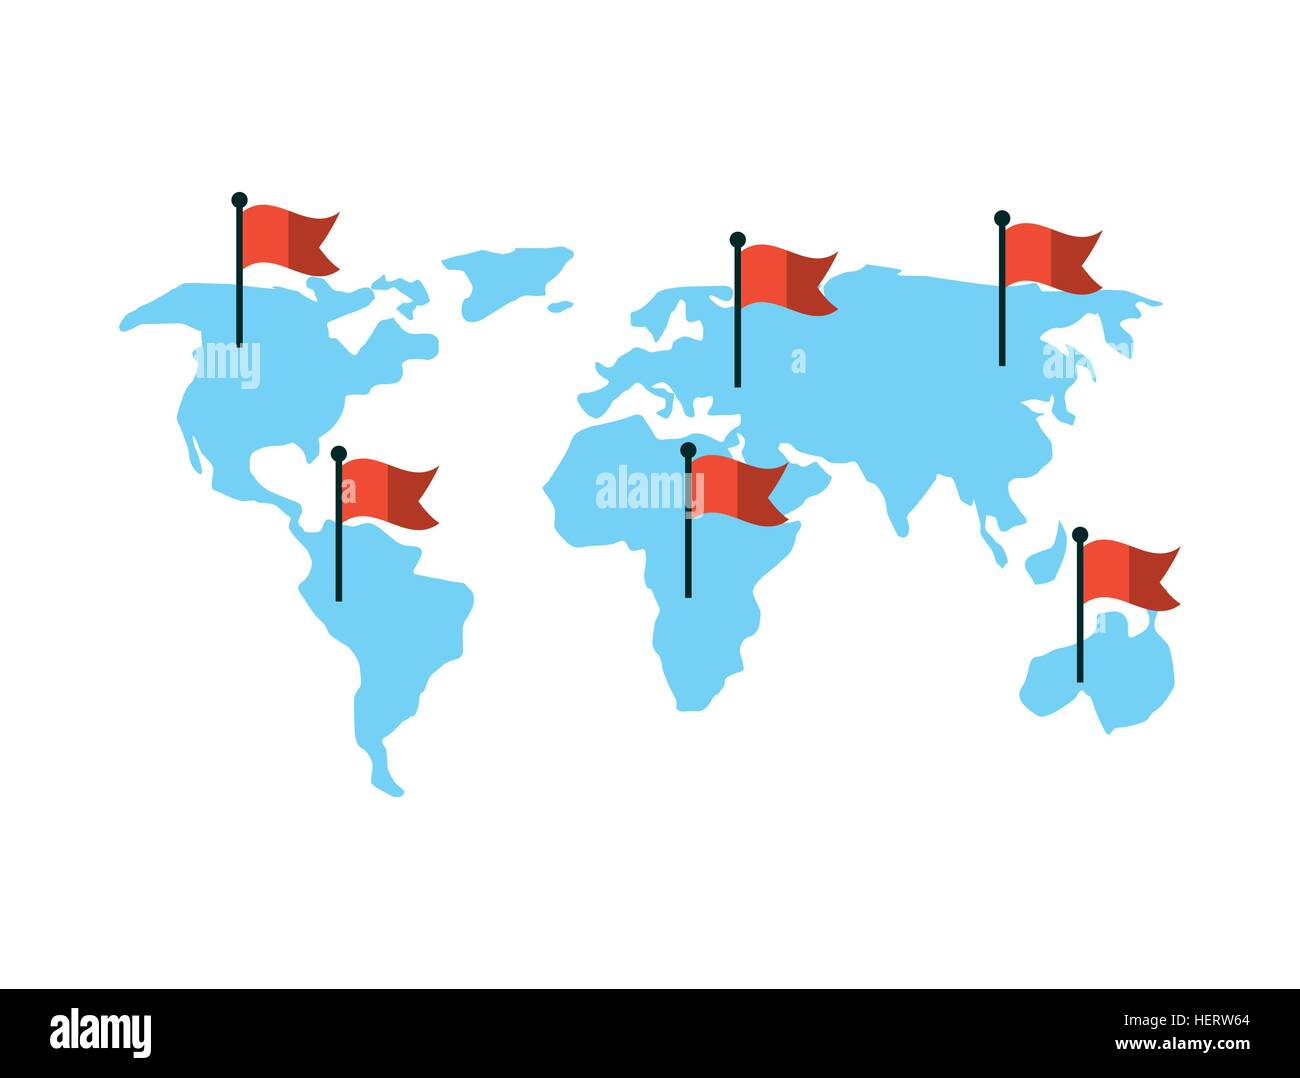 World map with red flags over white background colorful design world map with red flags over white background colorful design vector illustration gumiabroncs Images